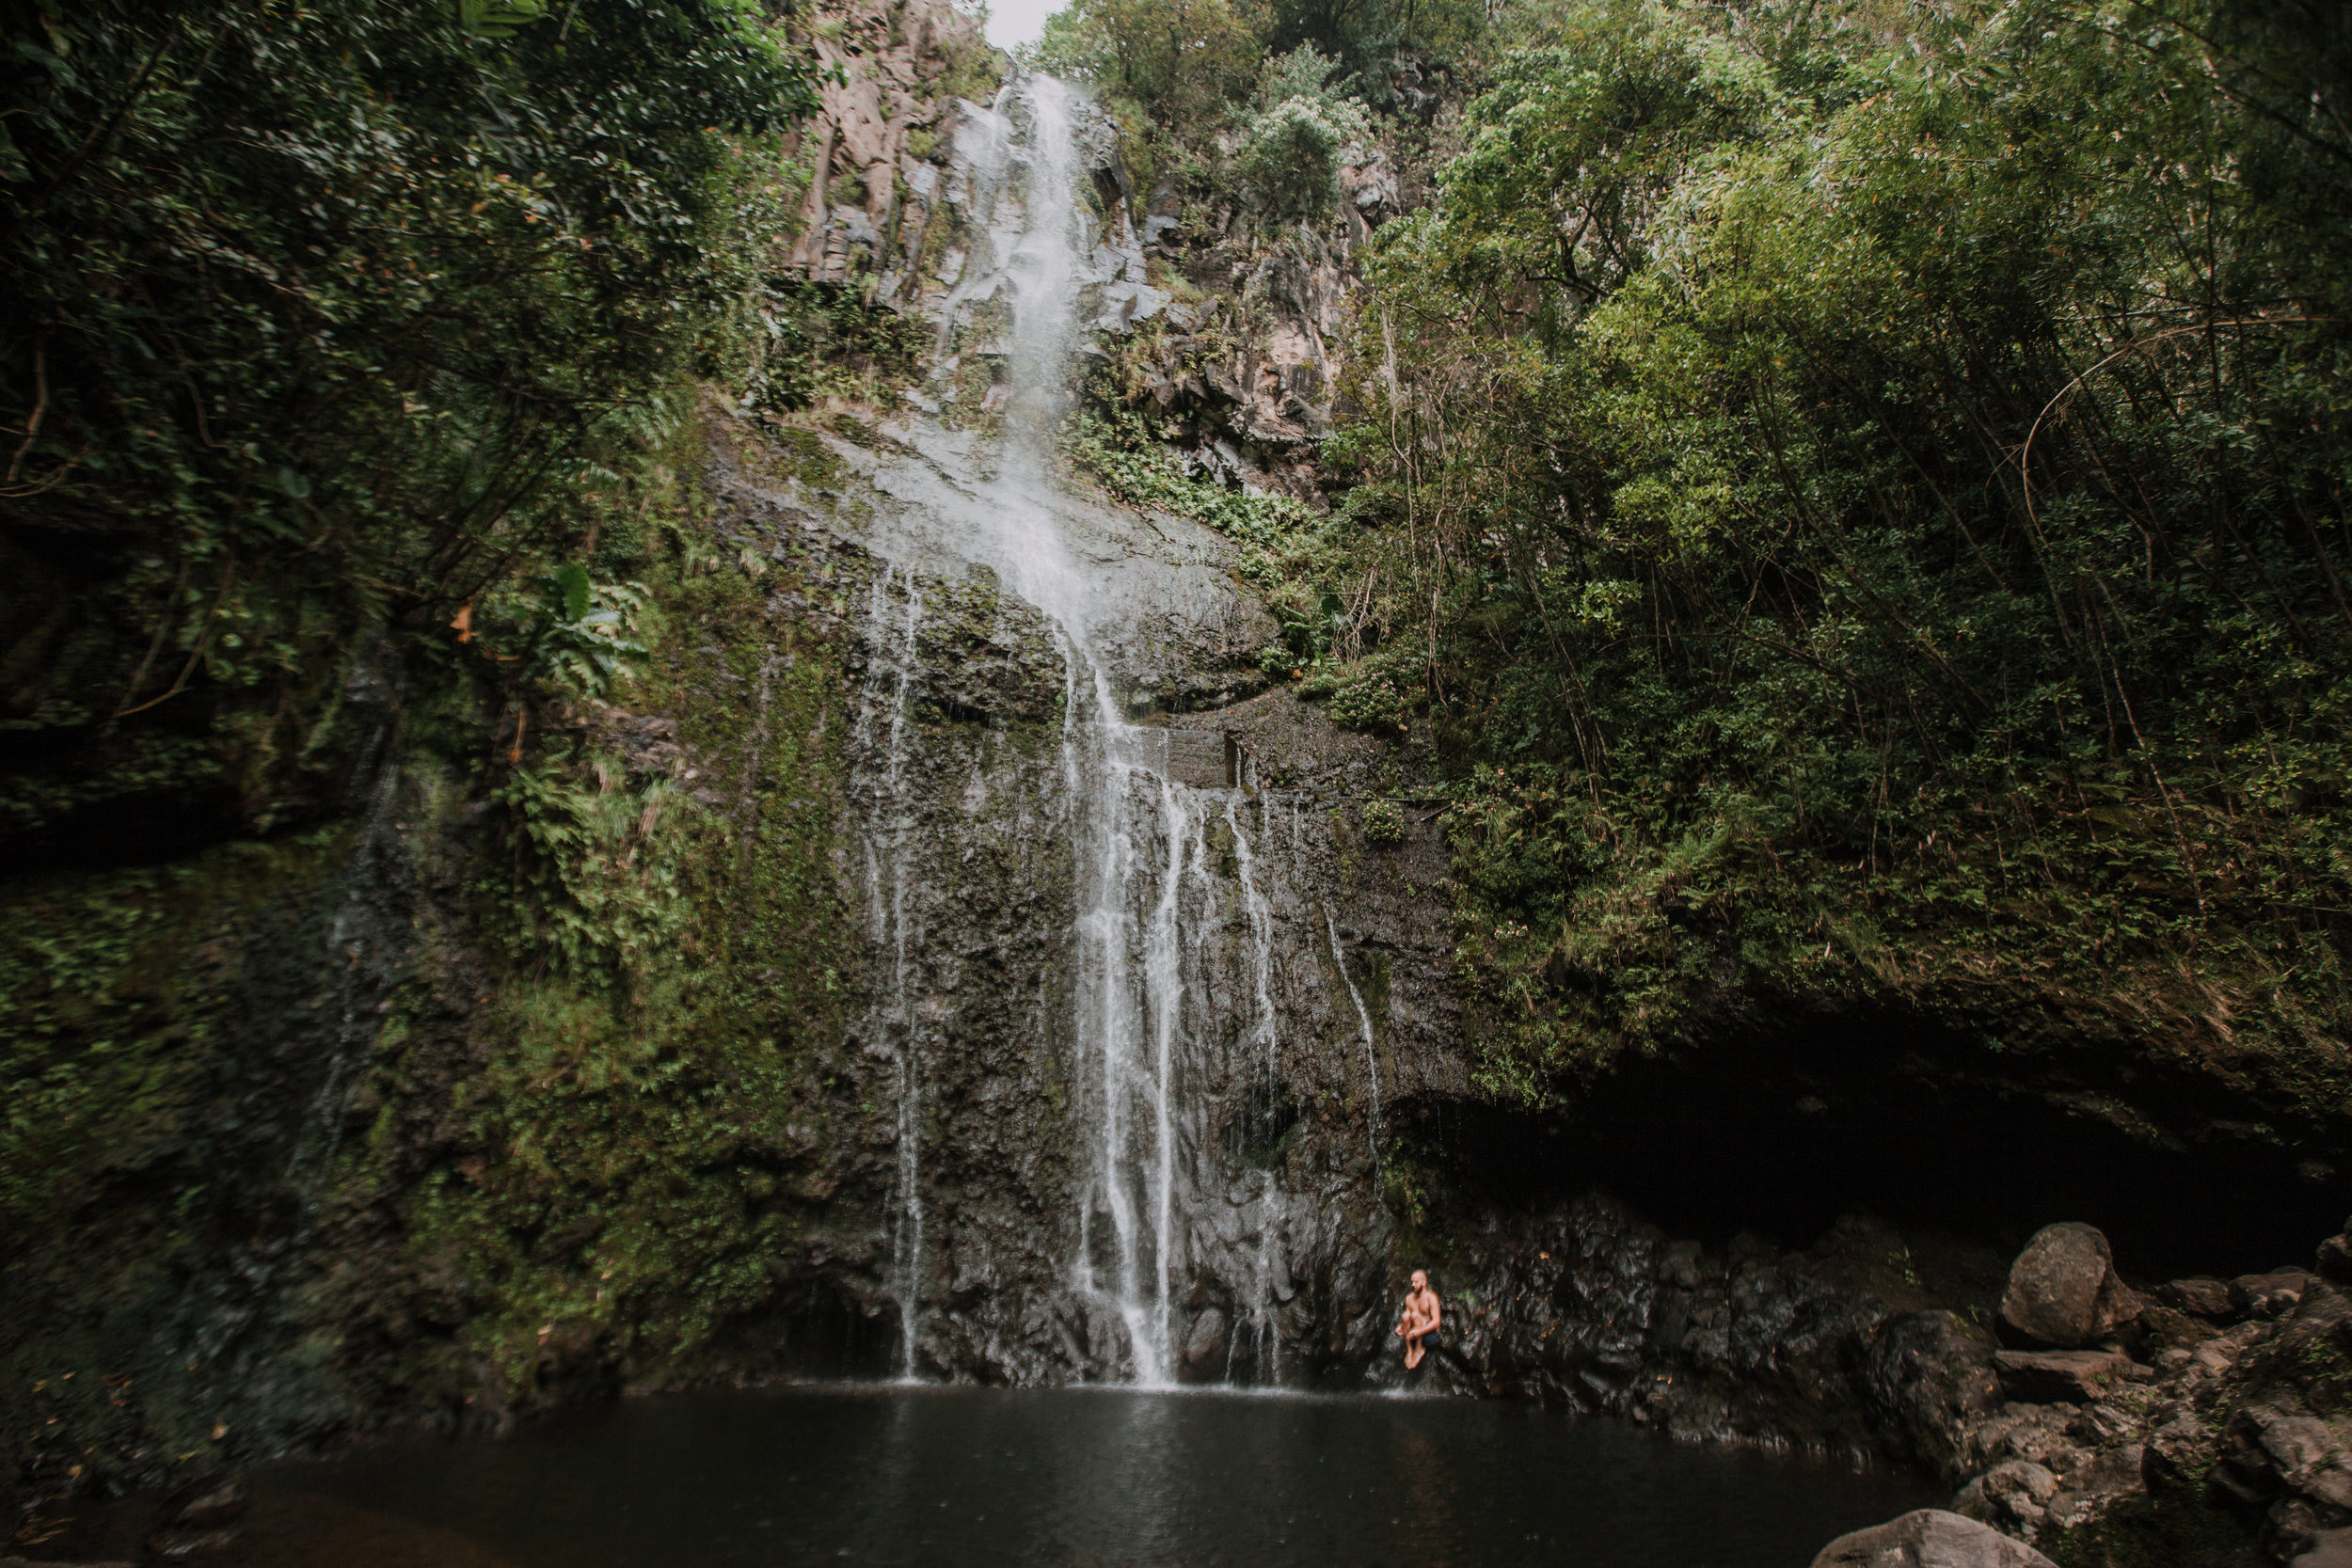 jumping into a hana maui waterfall, hawaii waterfall, road to hana, maui waterfall, hawaii wedding photographer, hawaii elopement photographer, maui wedding, maui engagements, maui elopement